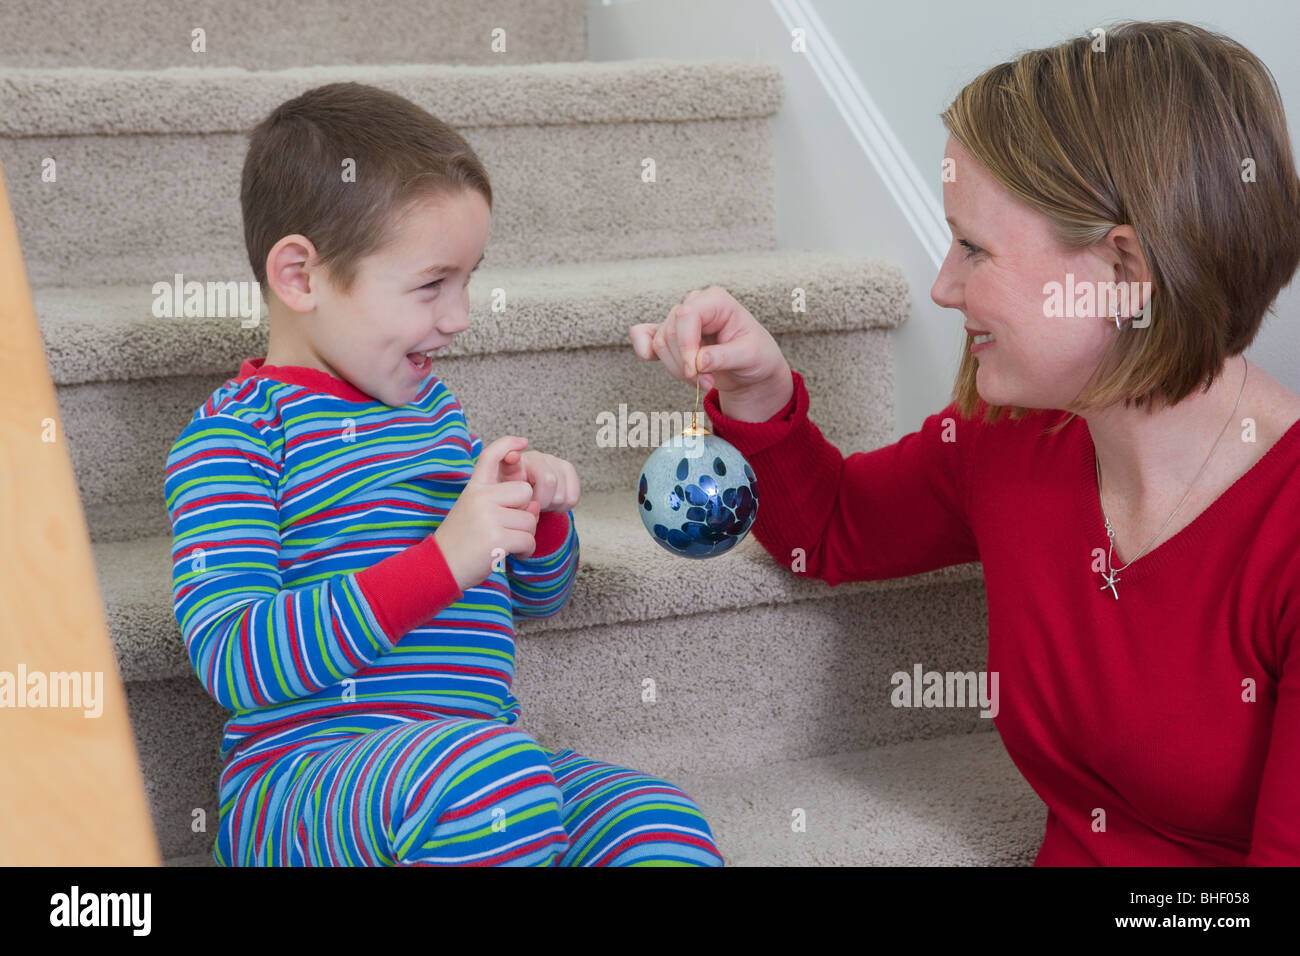 Woman showing Christmas ornament to her son - Stock Image